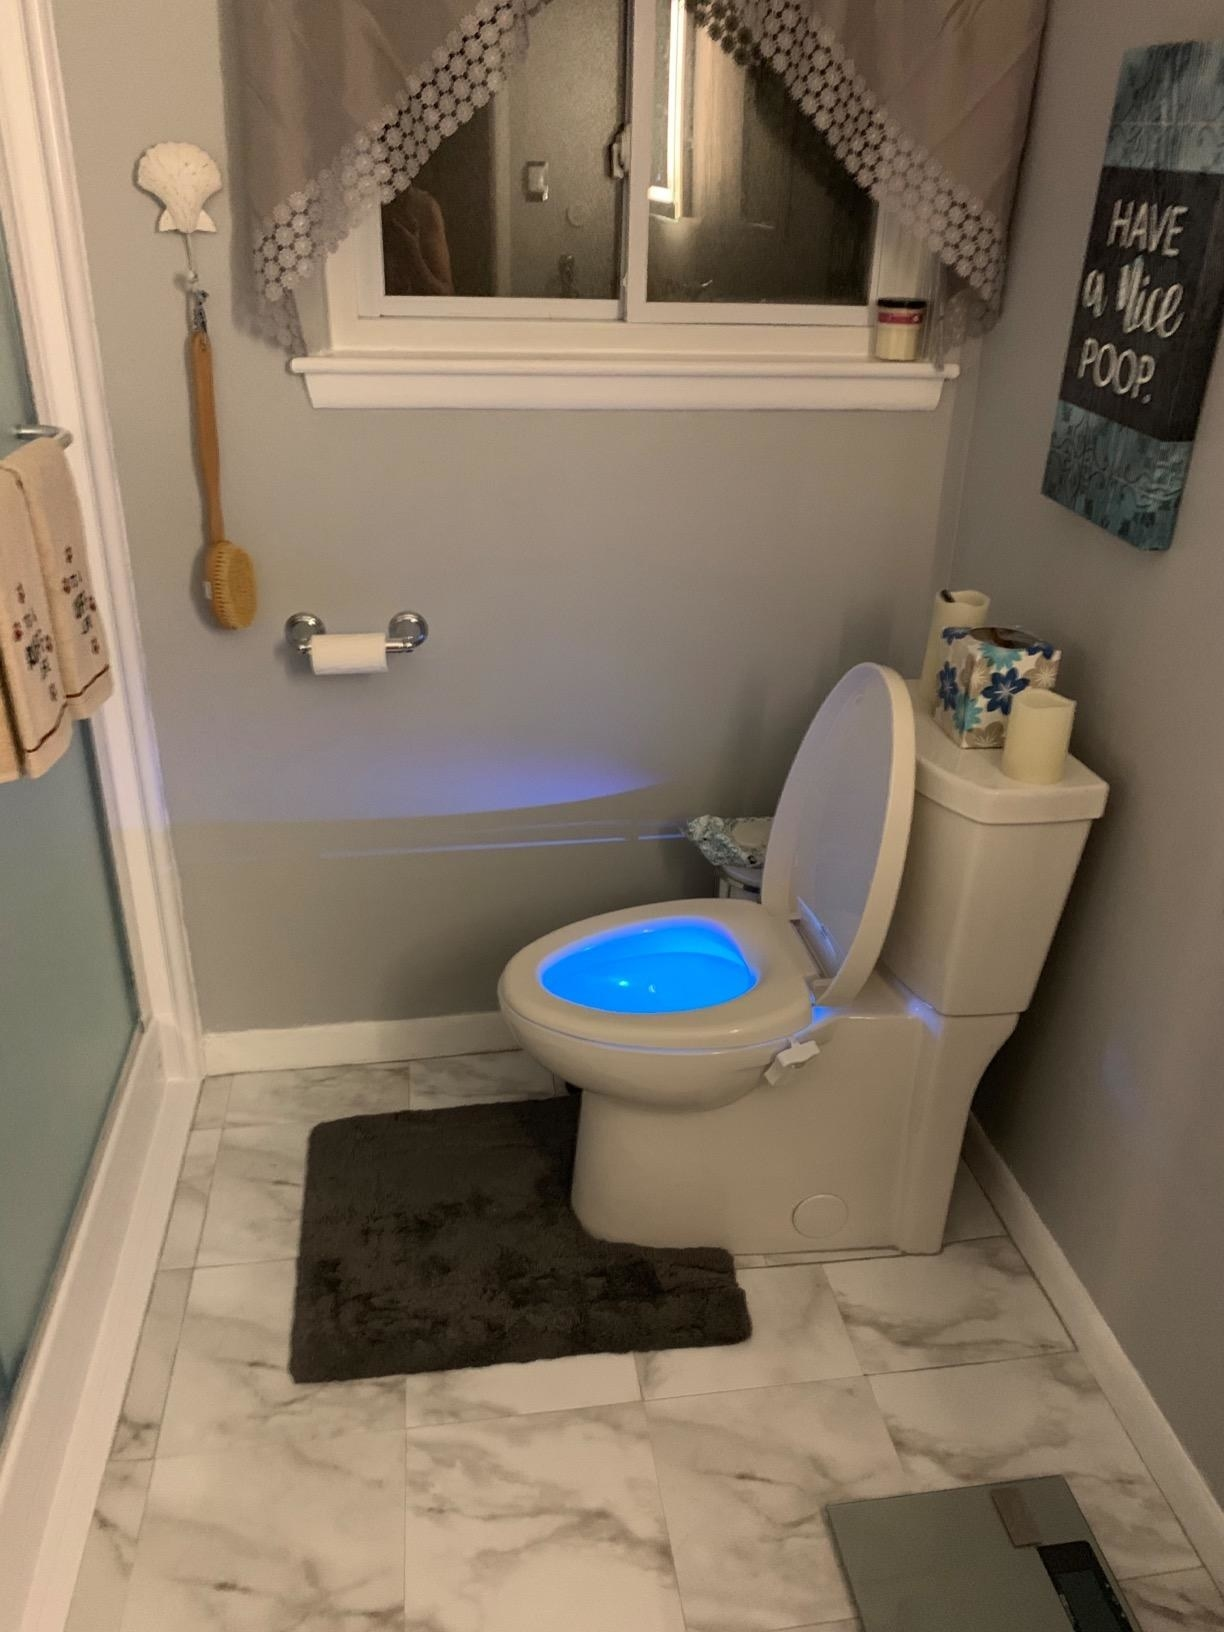 The light inside a toilet bowl glowing blue